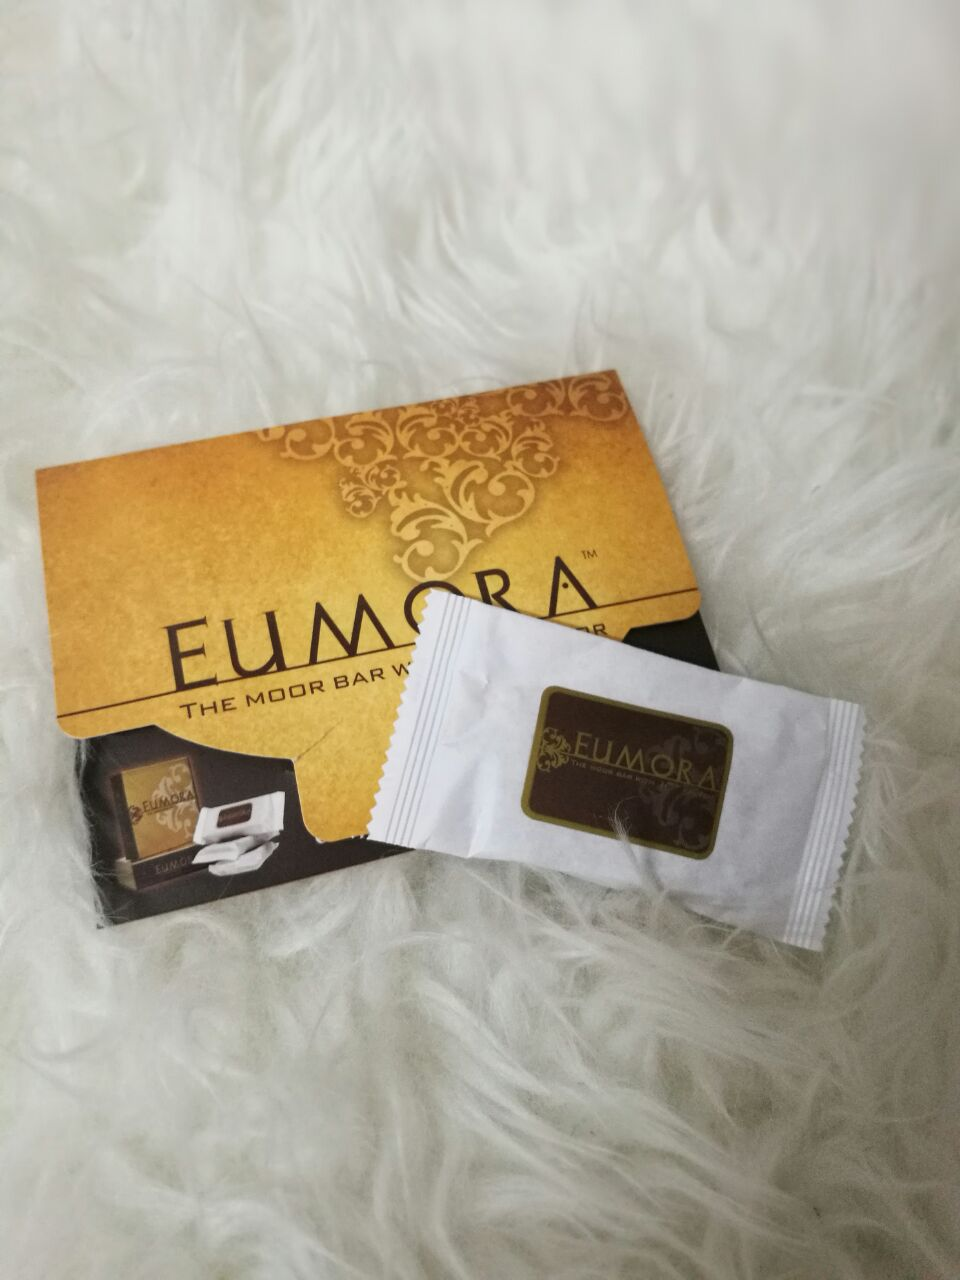 Eumora facial bar price theme, will